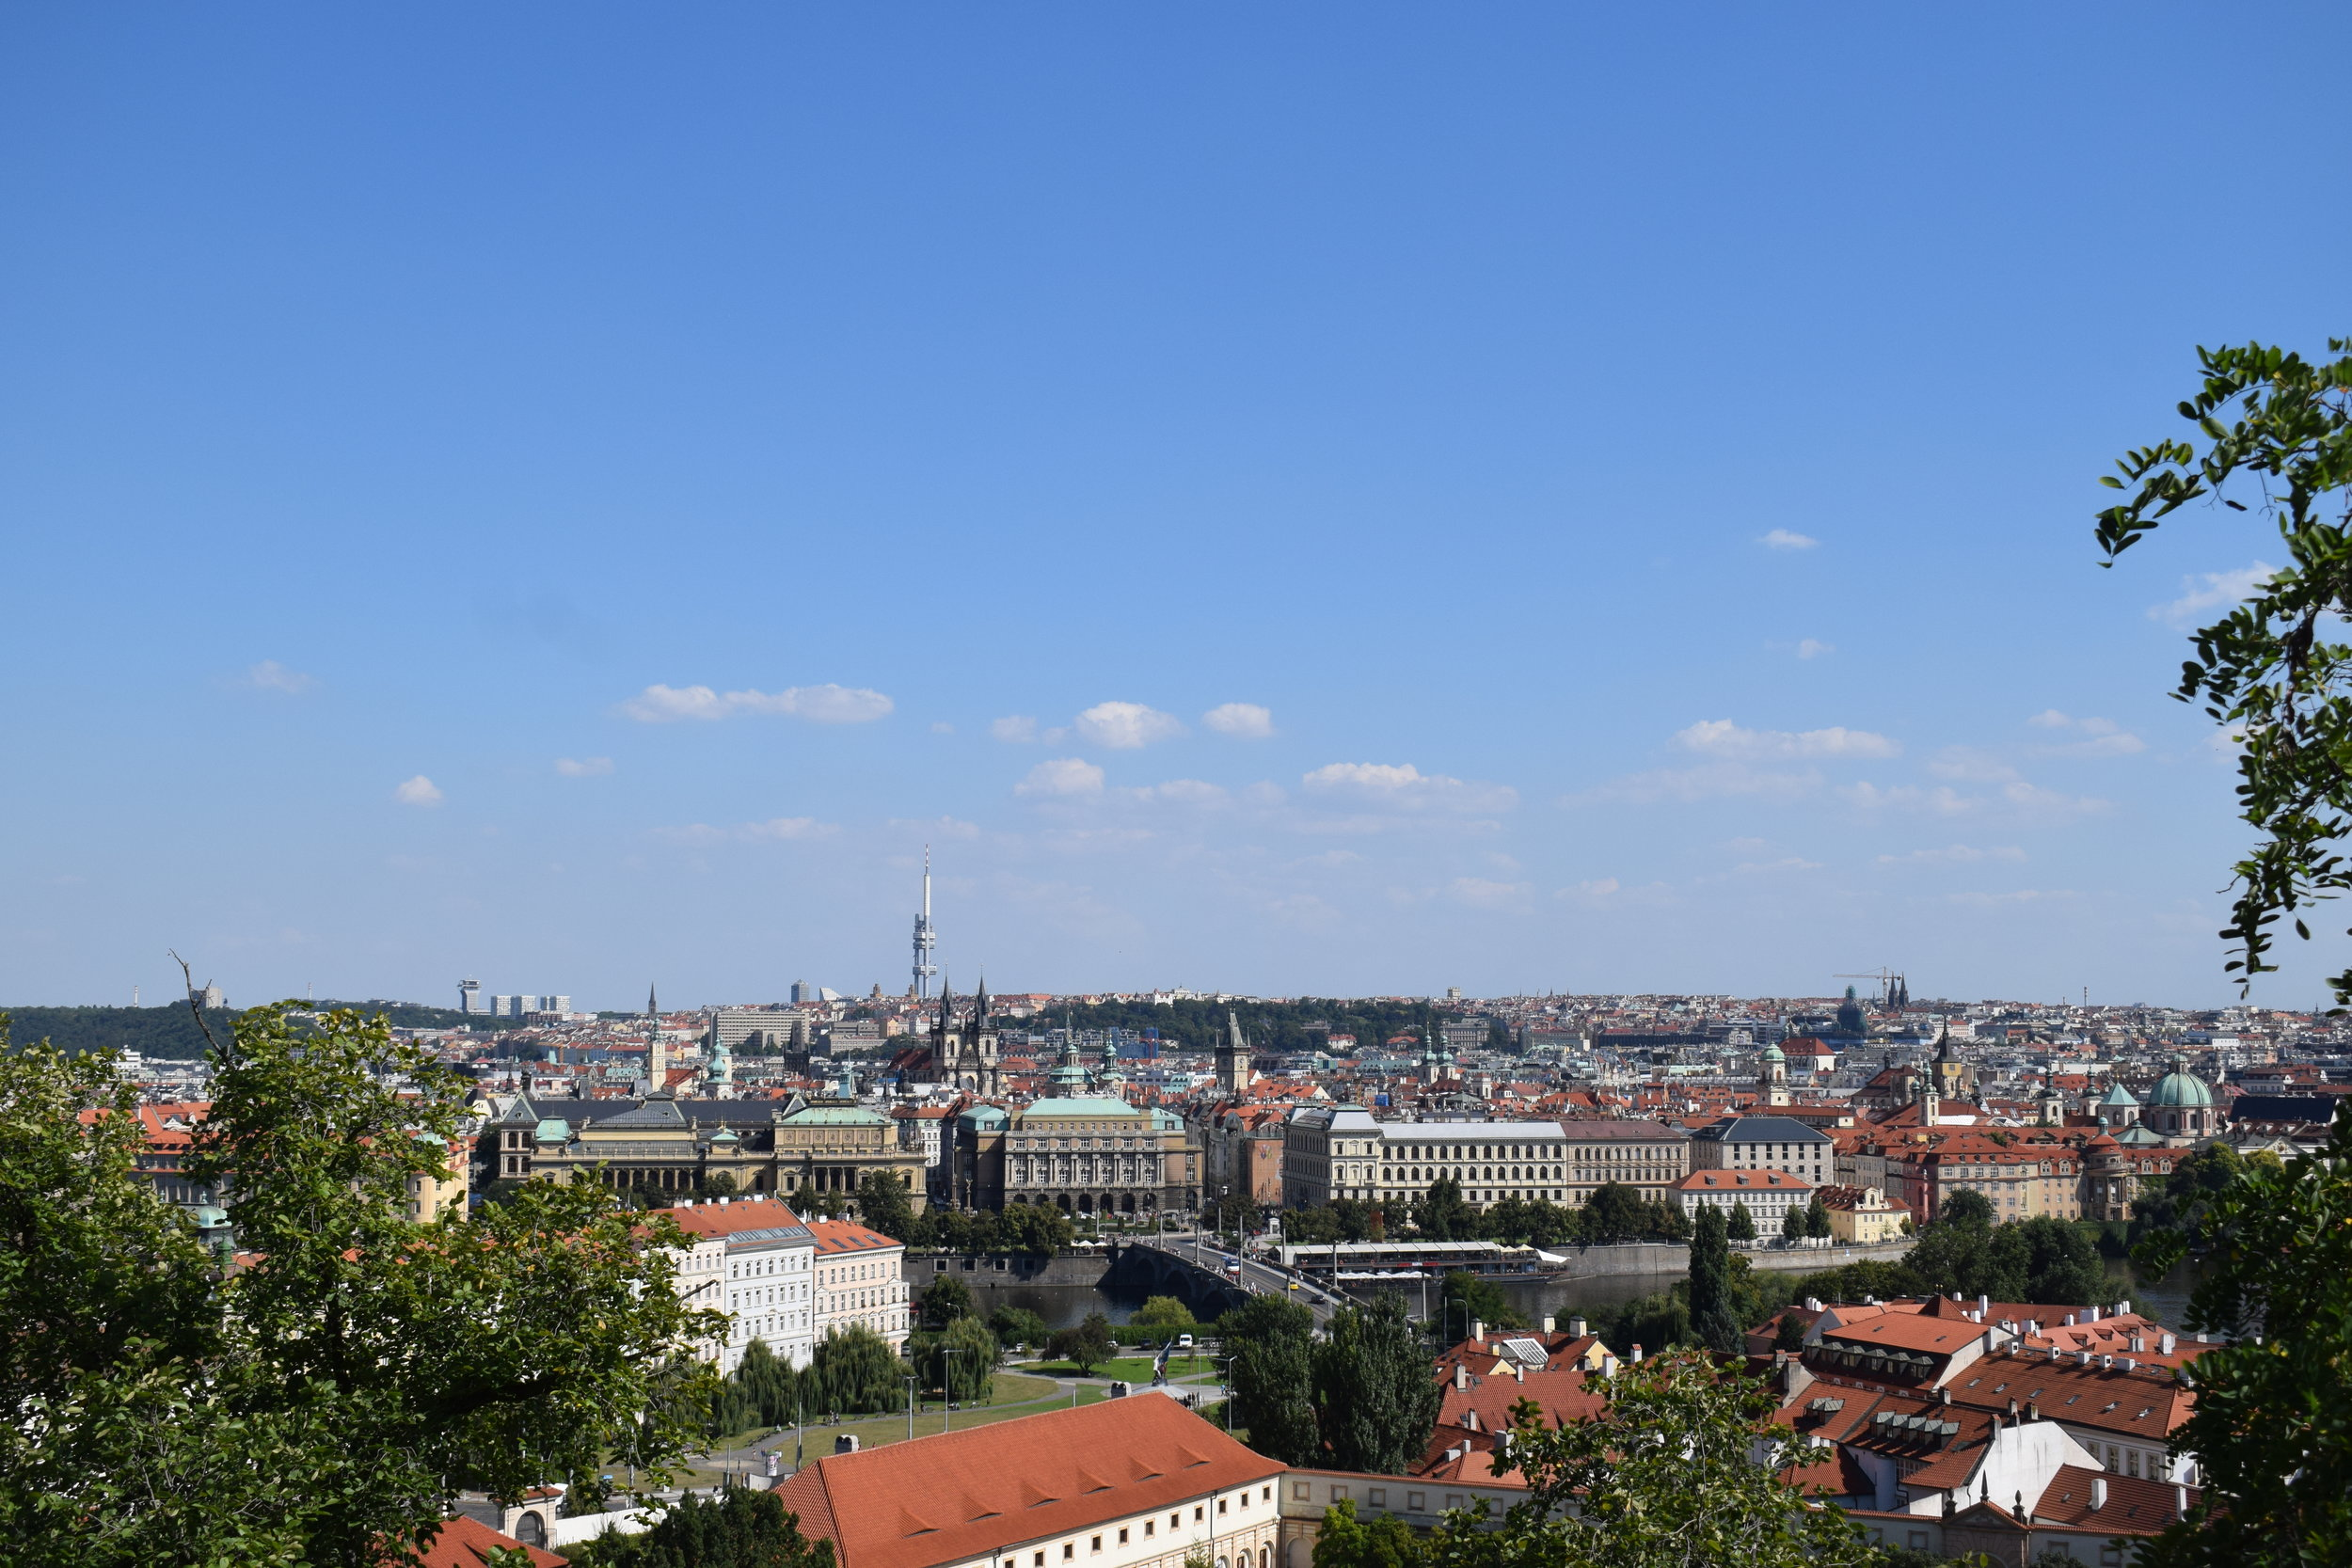 A stunning view over Prague from the grounds of its castle.